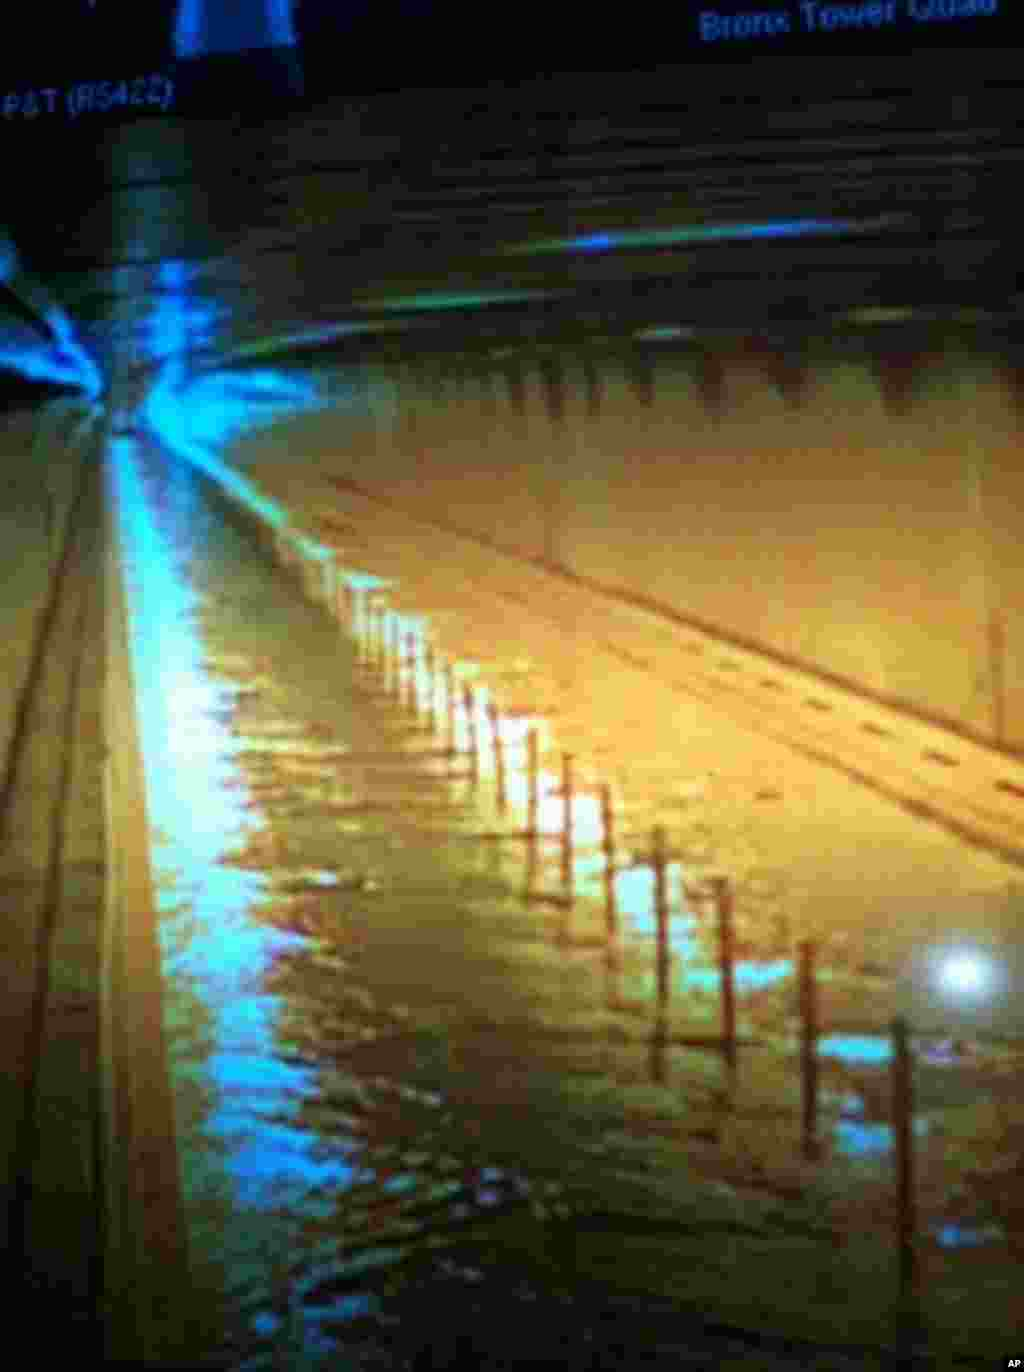 This photo provided by MTA Bridges and Tunnels shows floodwaters from Sandy entering the Hugh L. Carey Tunnel (former Brooklyn-Battery Tunnel), which was closed on Monday, Oct. 29, 2012. (AP Photo/ MTA Bridges and Tunnels)